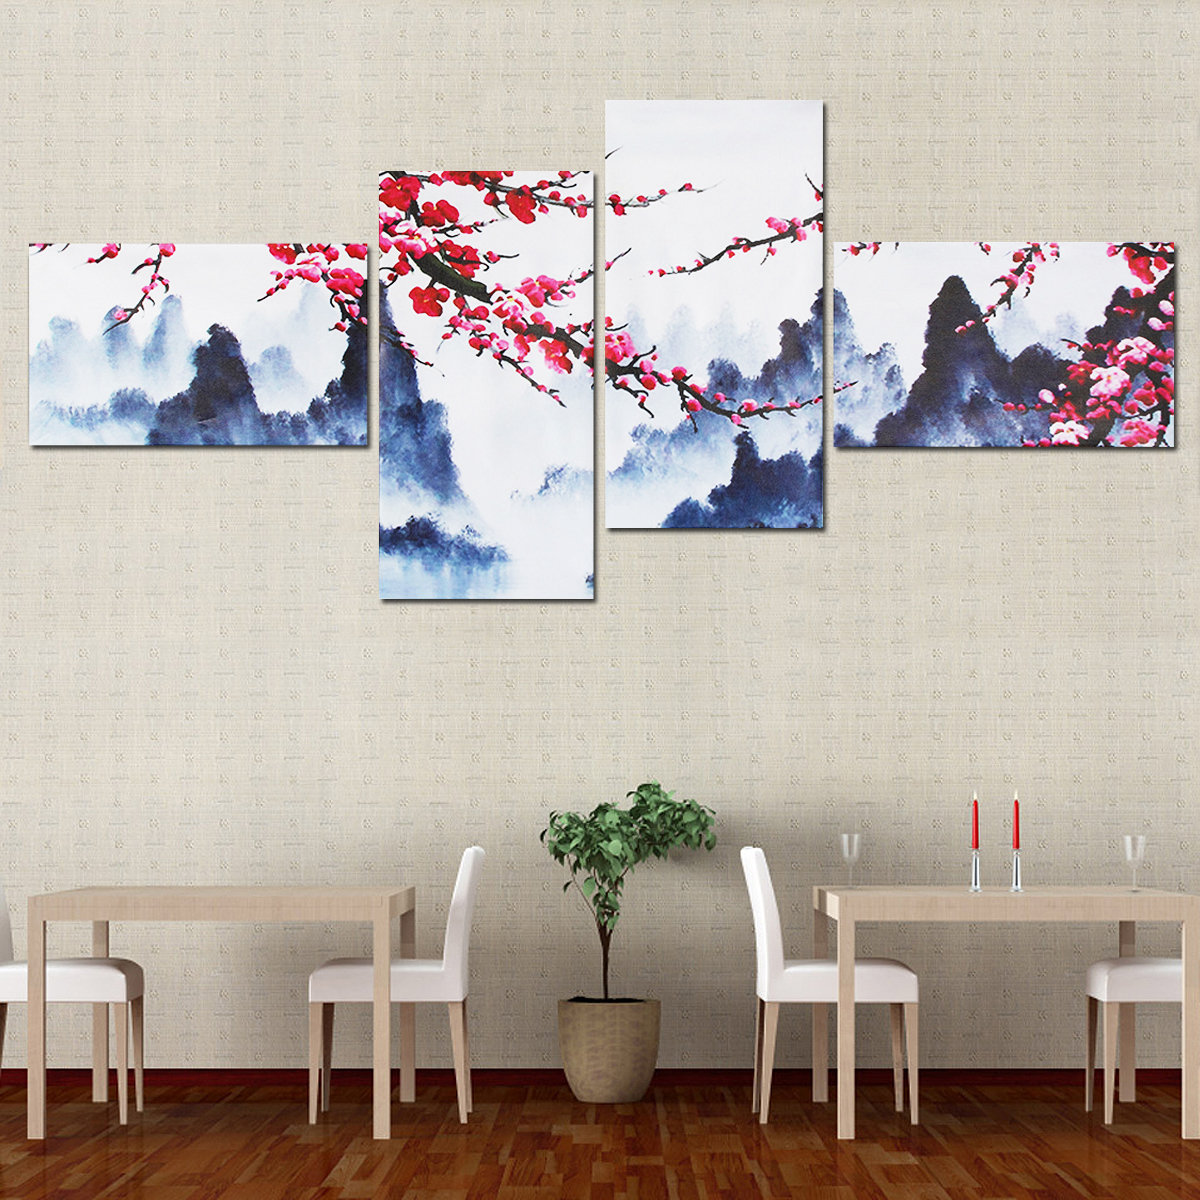 4Pcs Plum Blossom Unframed Modern Painting Canvas Print Wall Art Picture Living Room Home Decor